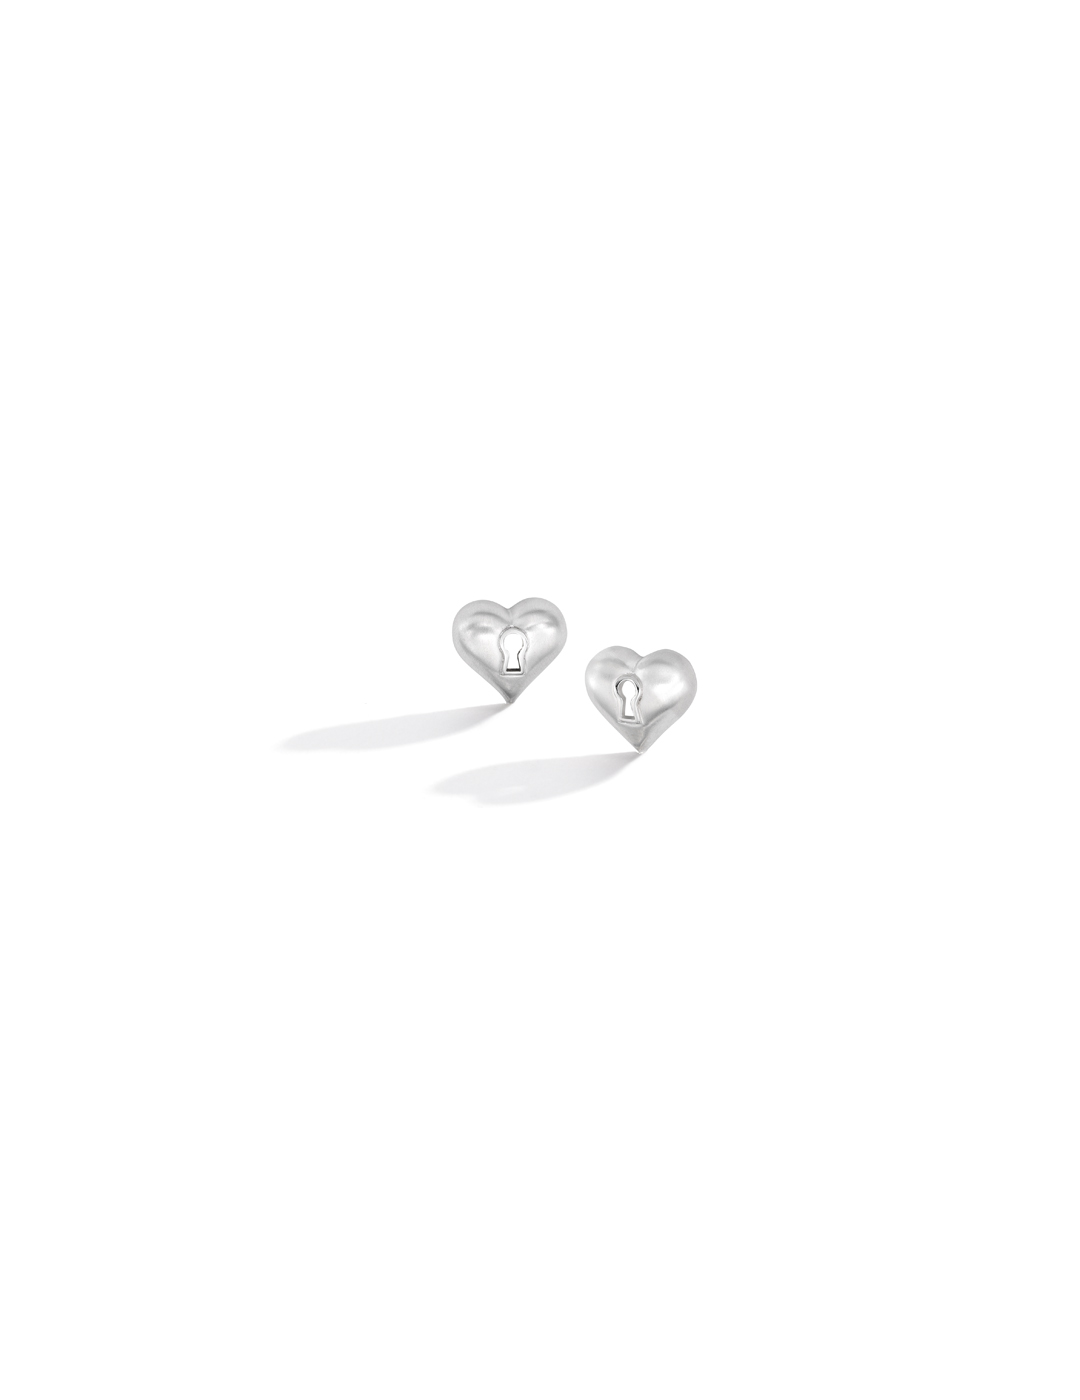 mish_products_earrings_Key-To-My-Heart-StudER-WG-1